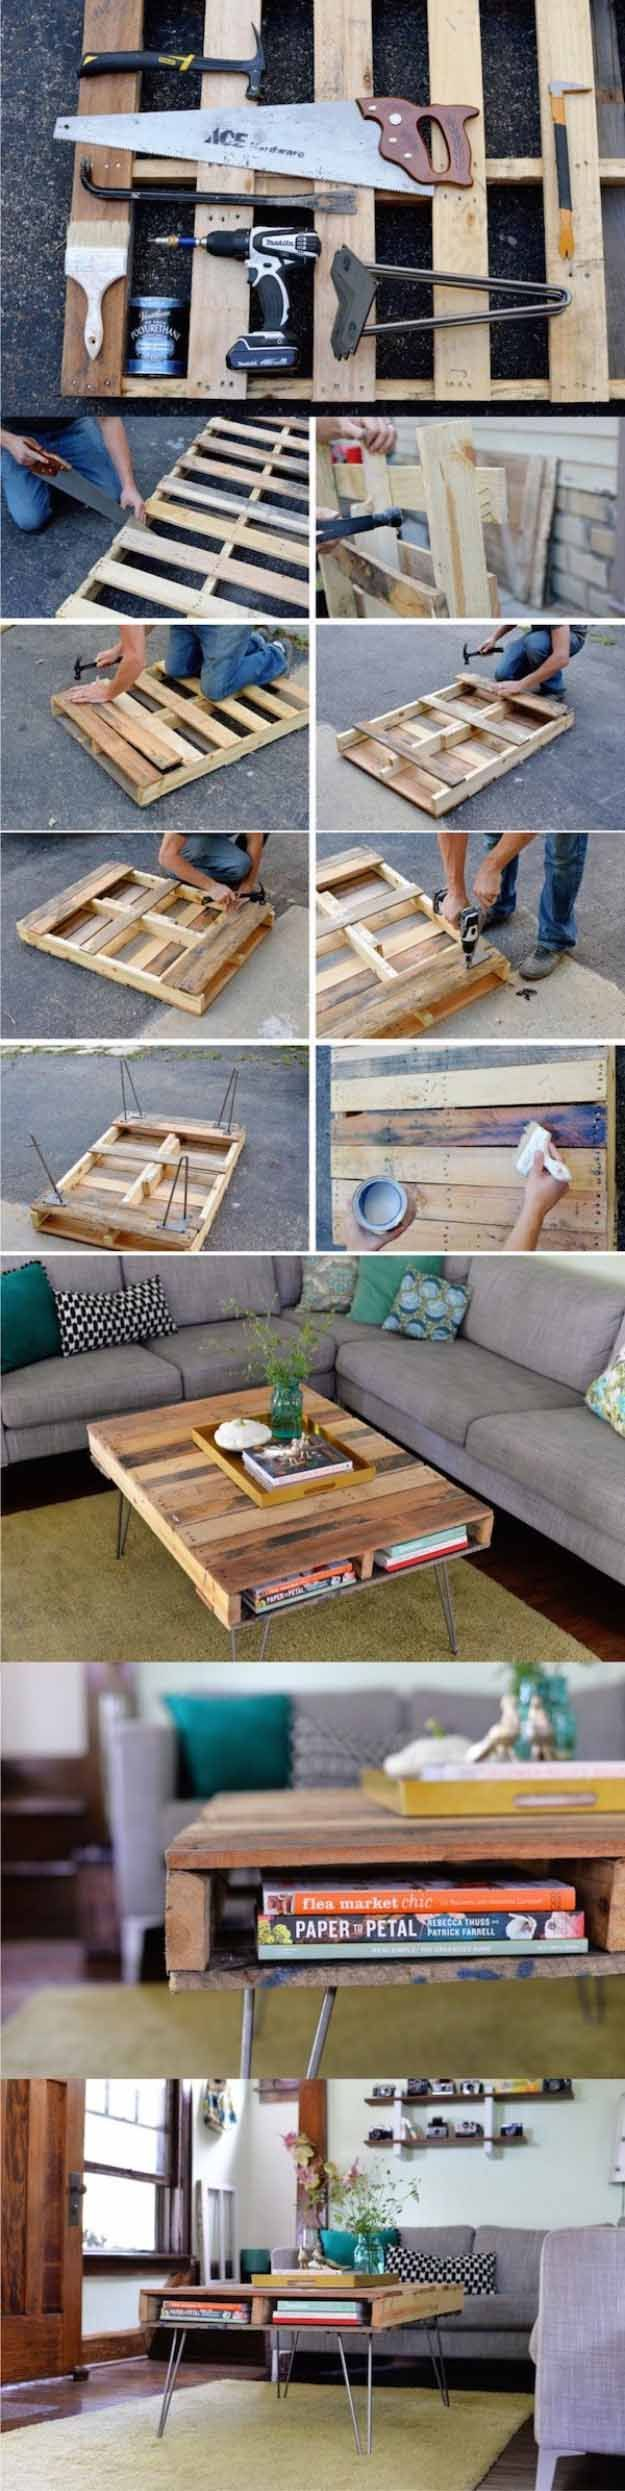 16 diy coffee table projects selbstgemachte lampen. Black Bedroom Furniture Sets. Home Design Ideas